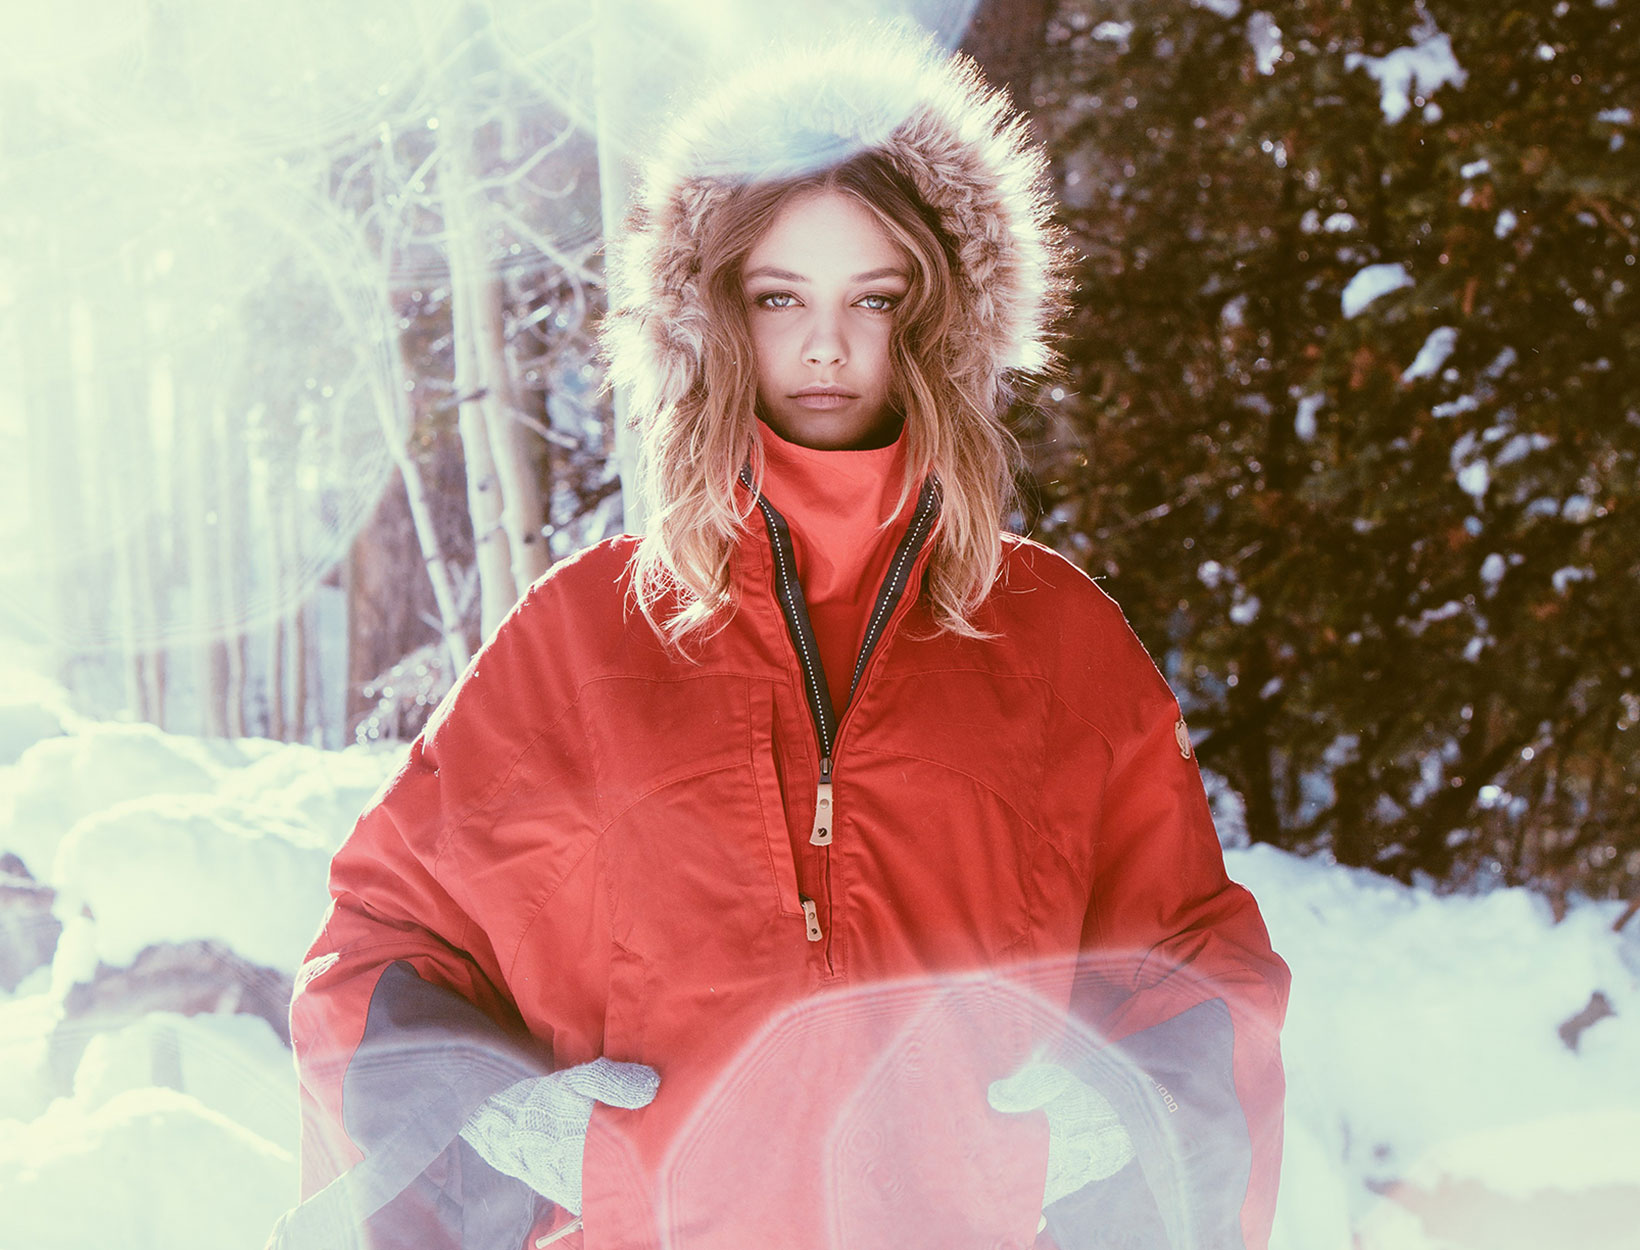 Boots, Coats, and More Cold-Weather Musts | Goop